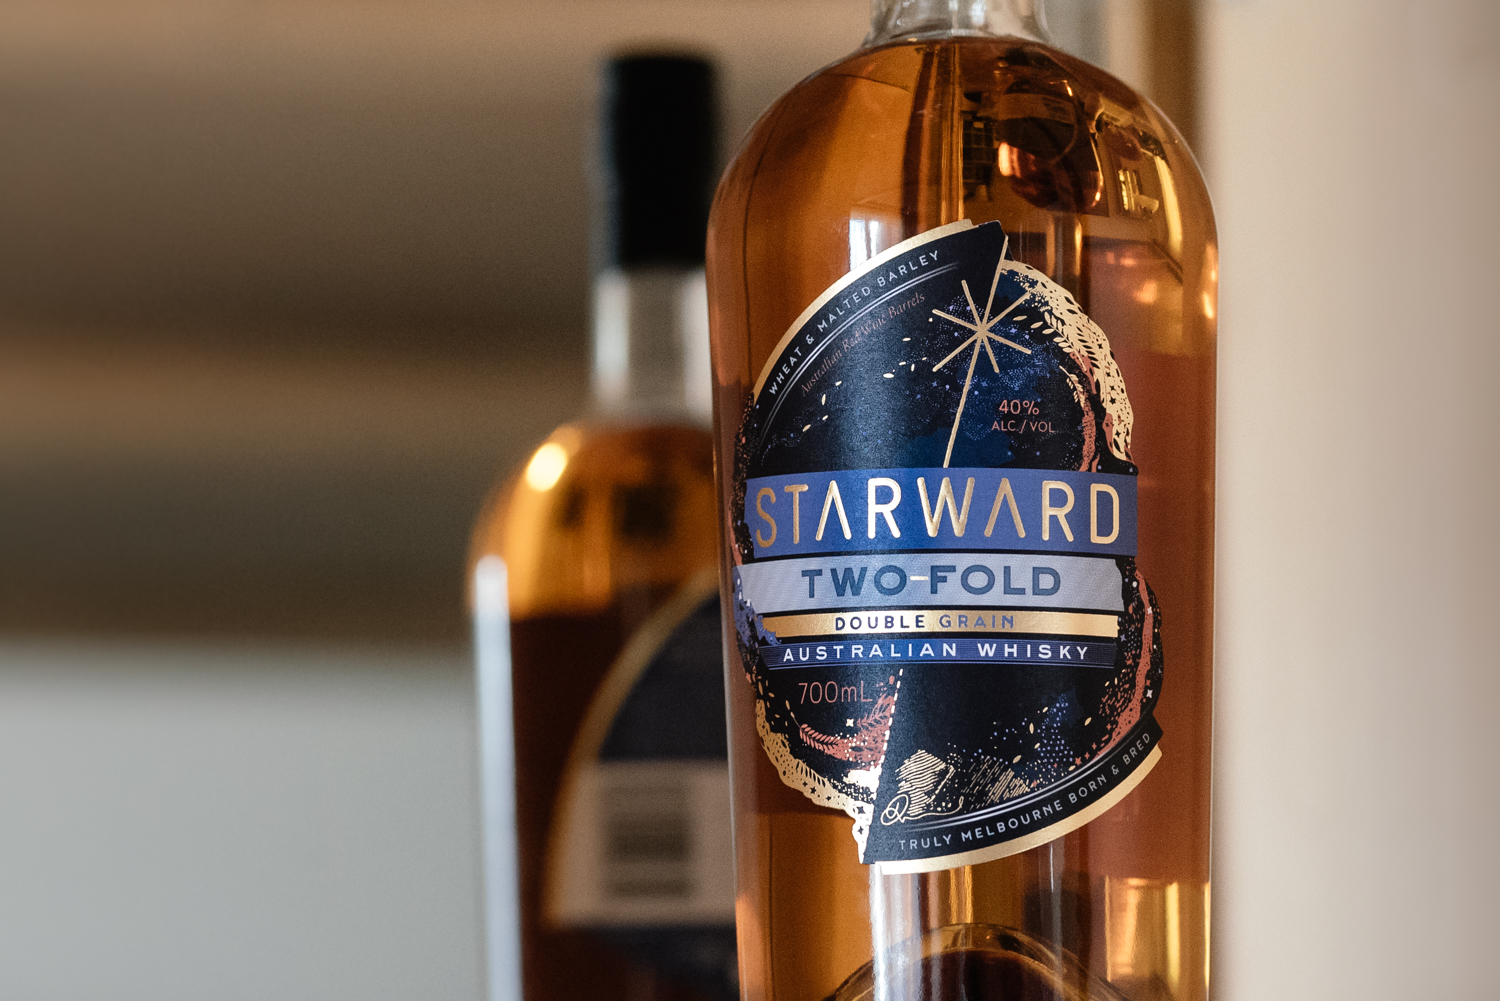 Starward Two Fold – Double Grain Australian Whisky